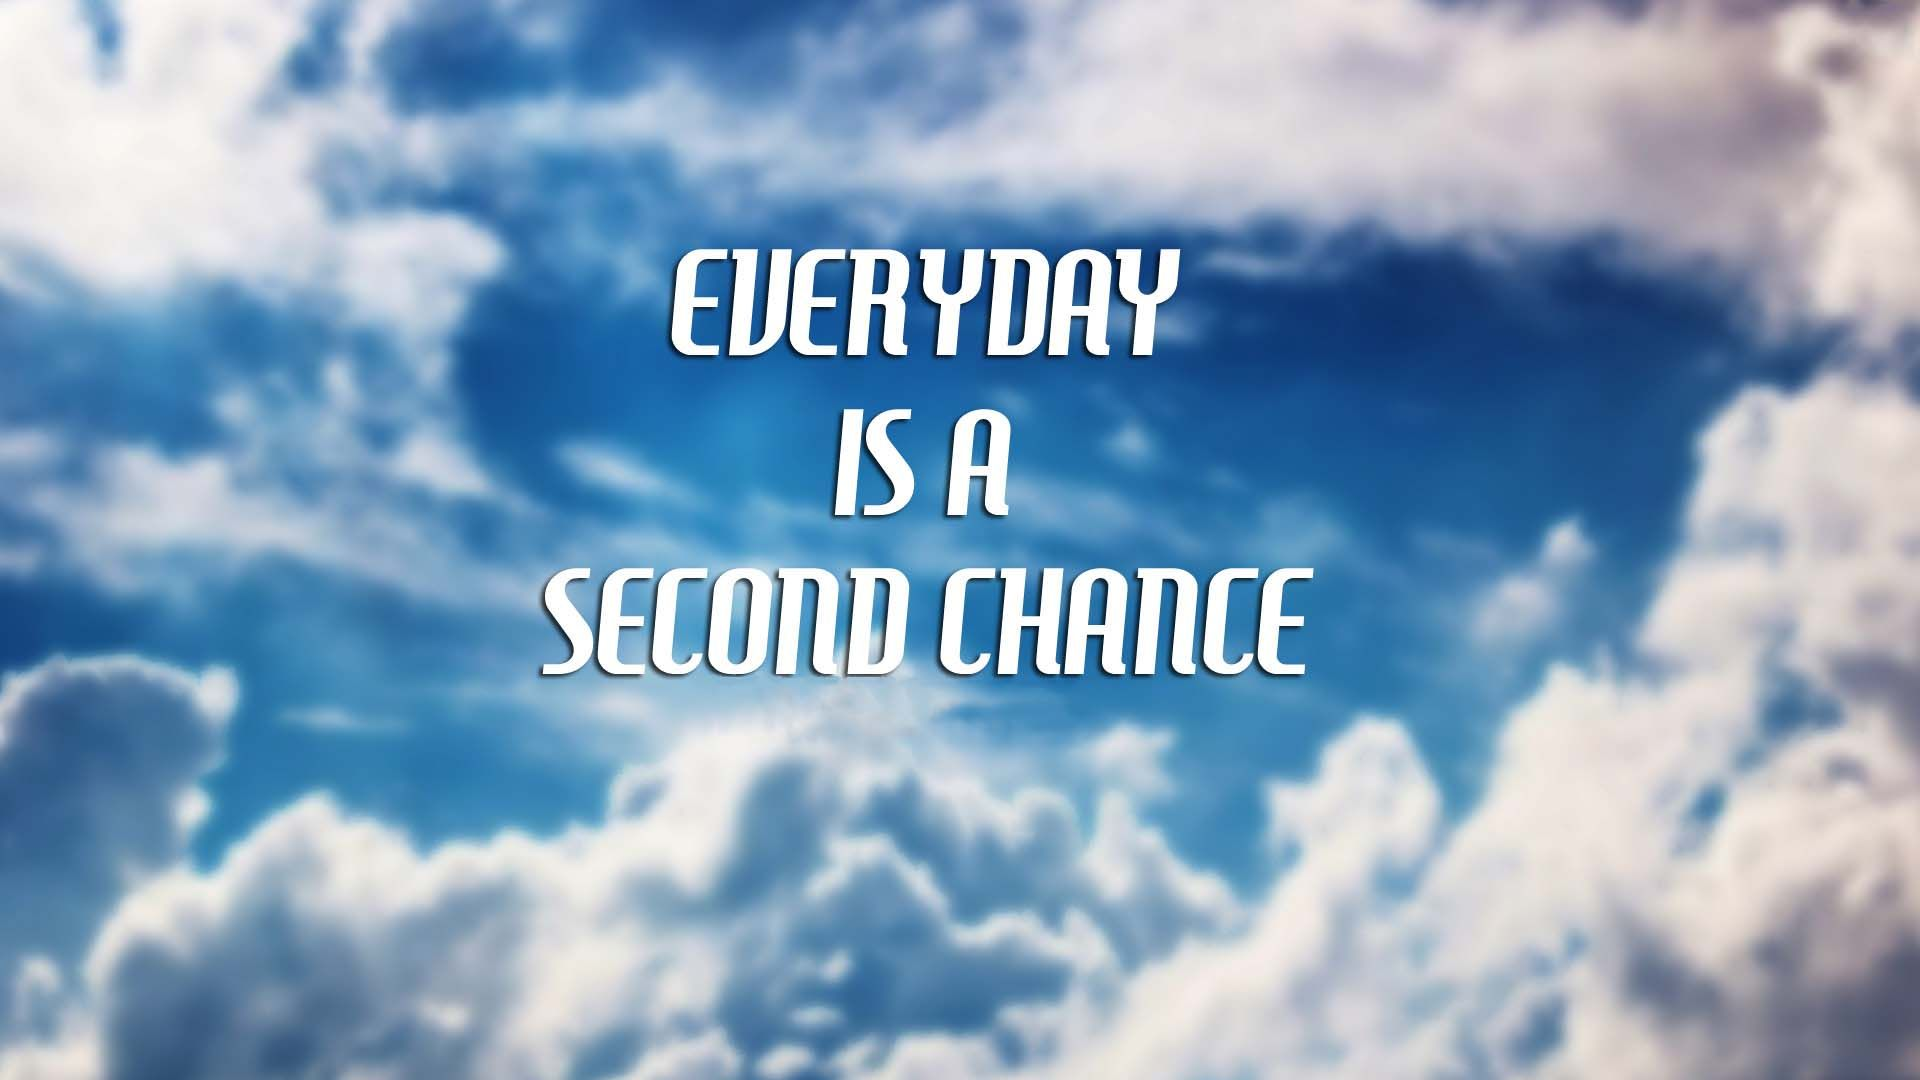 Everyday Is A Second Chance Wallpaper Best Wallpapers For Profile 1920x1080 Wallpaper Teahub Io